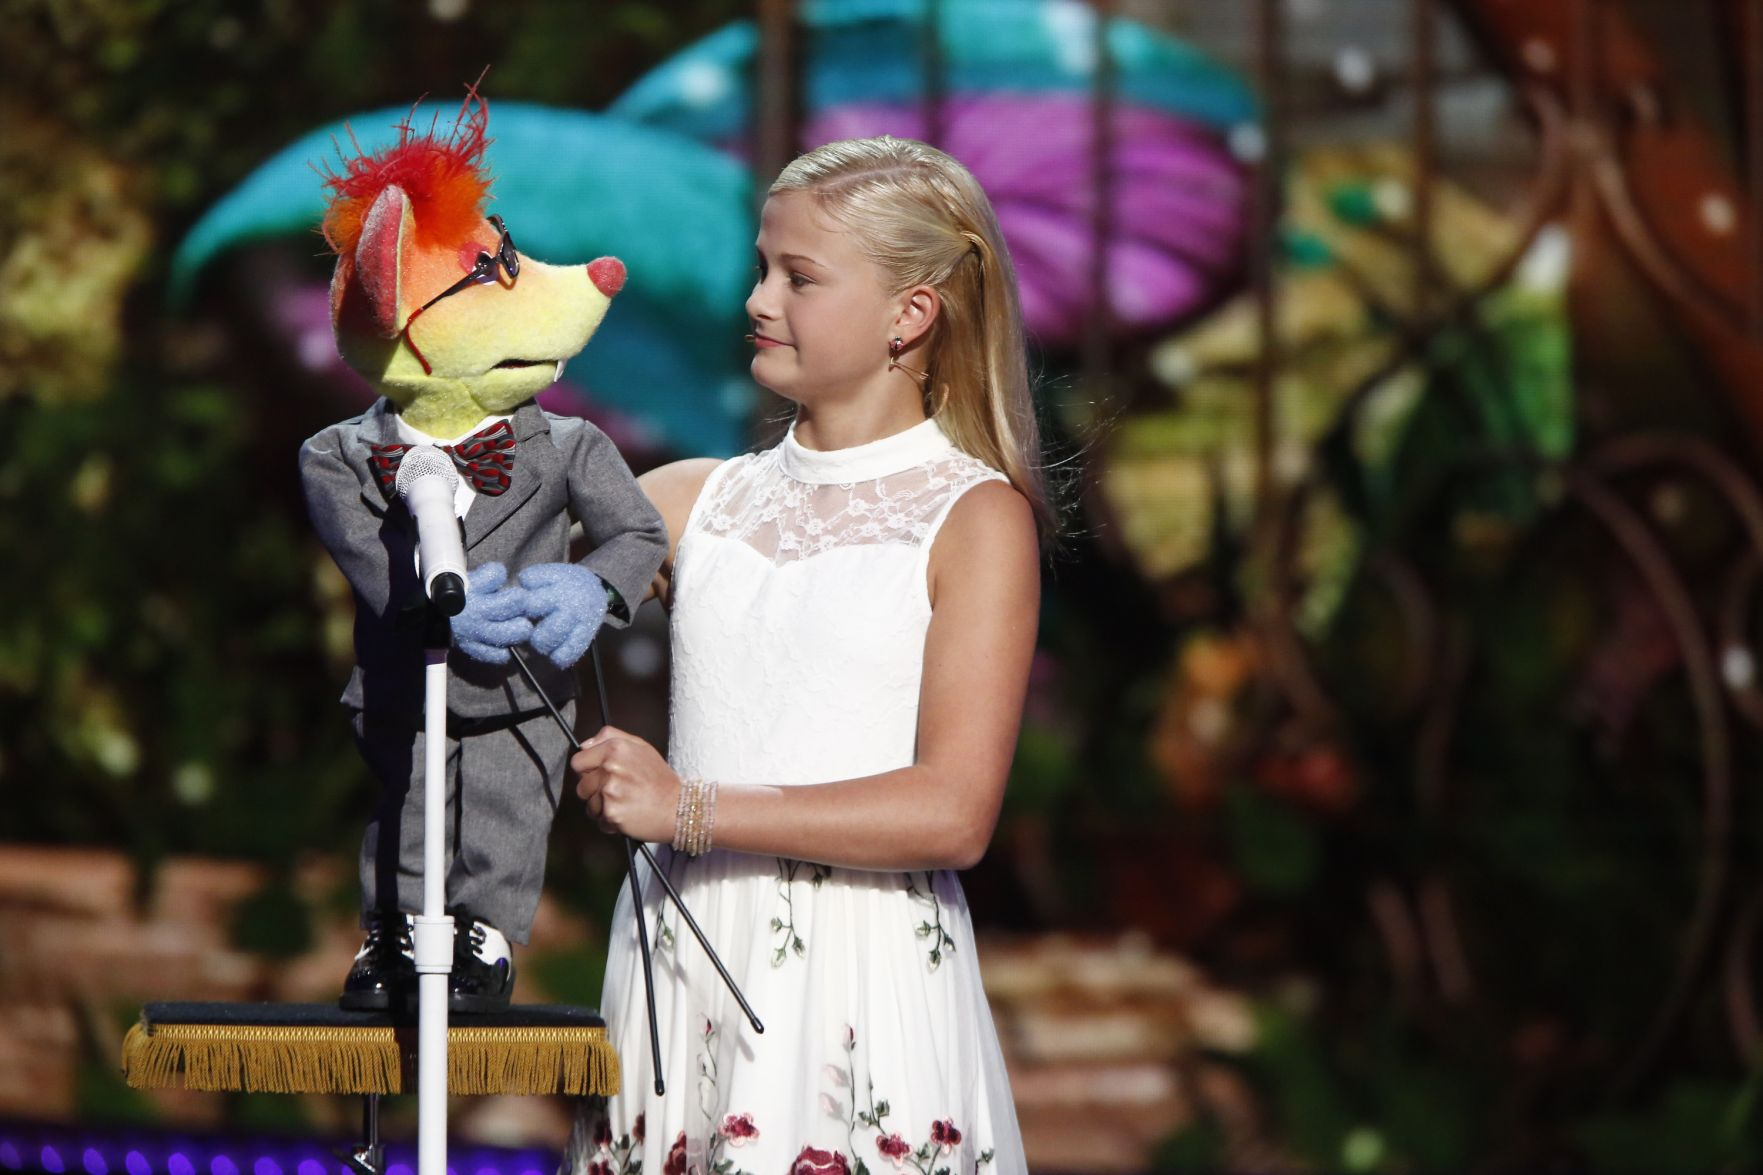 'America's Got Talent' Winner Darci Lynne Farmer: Watch All of Her Performances